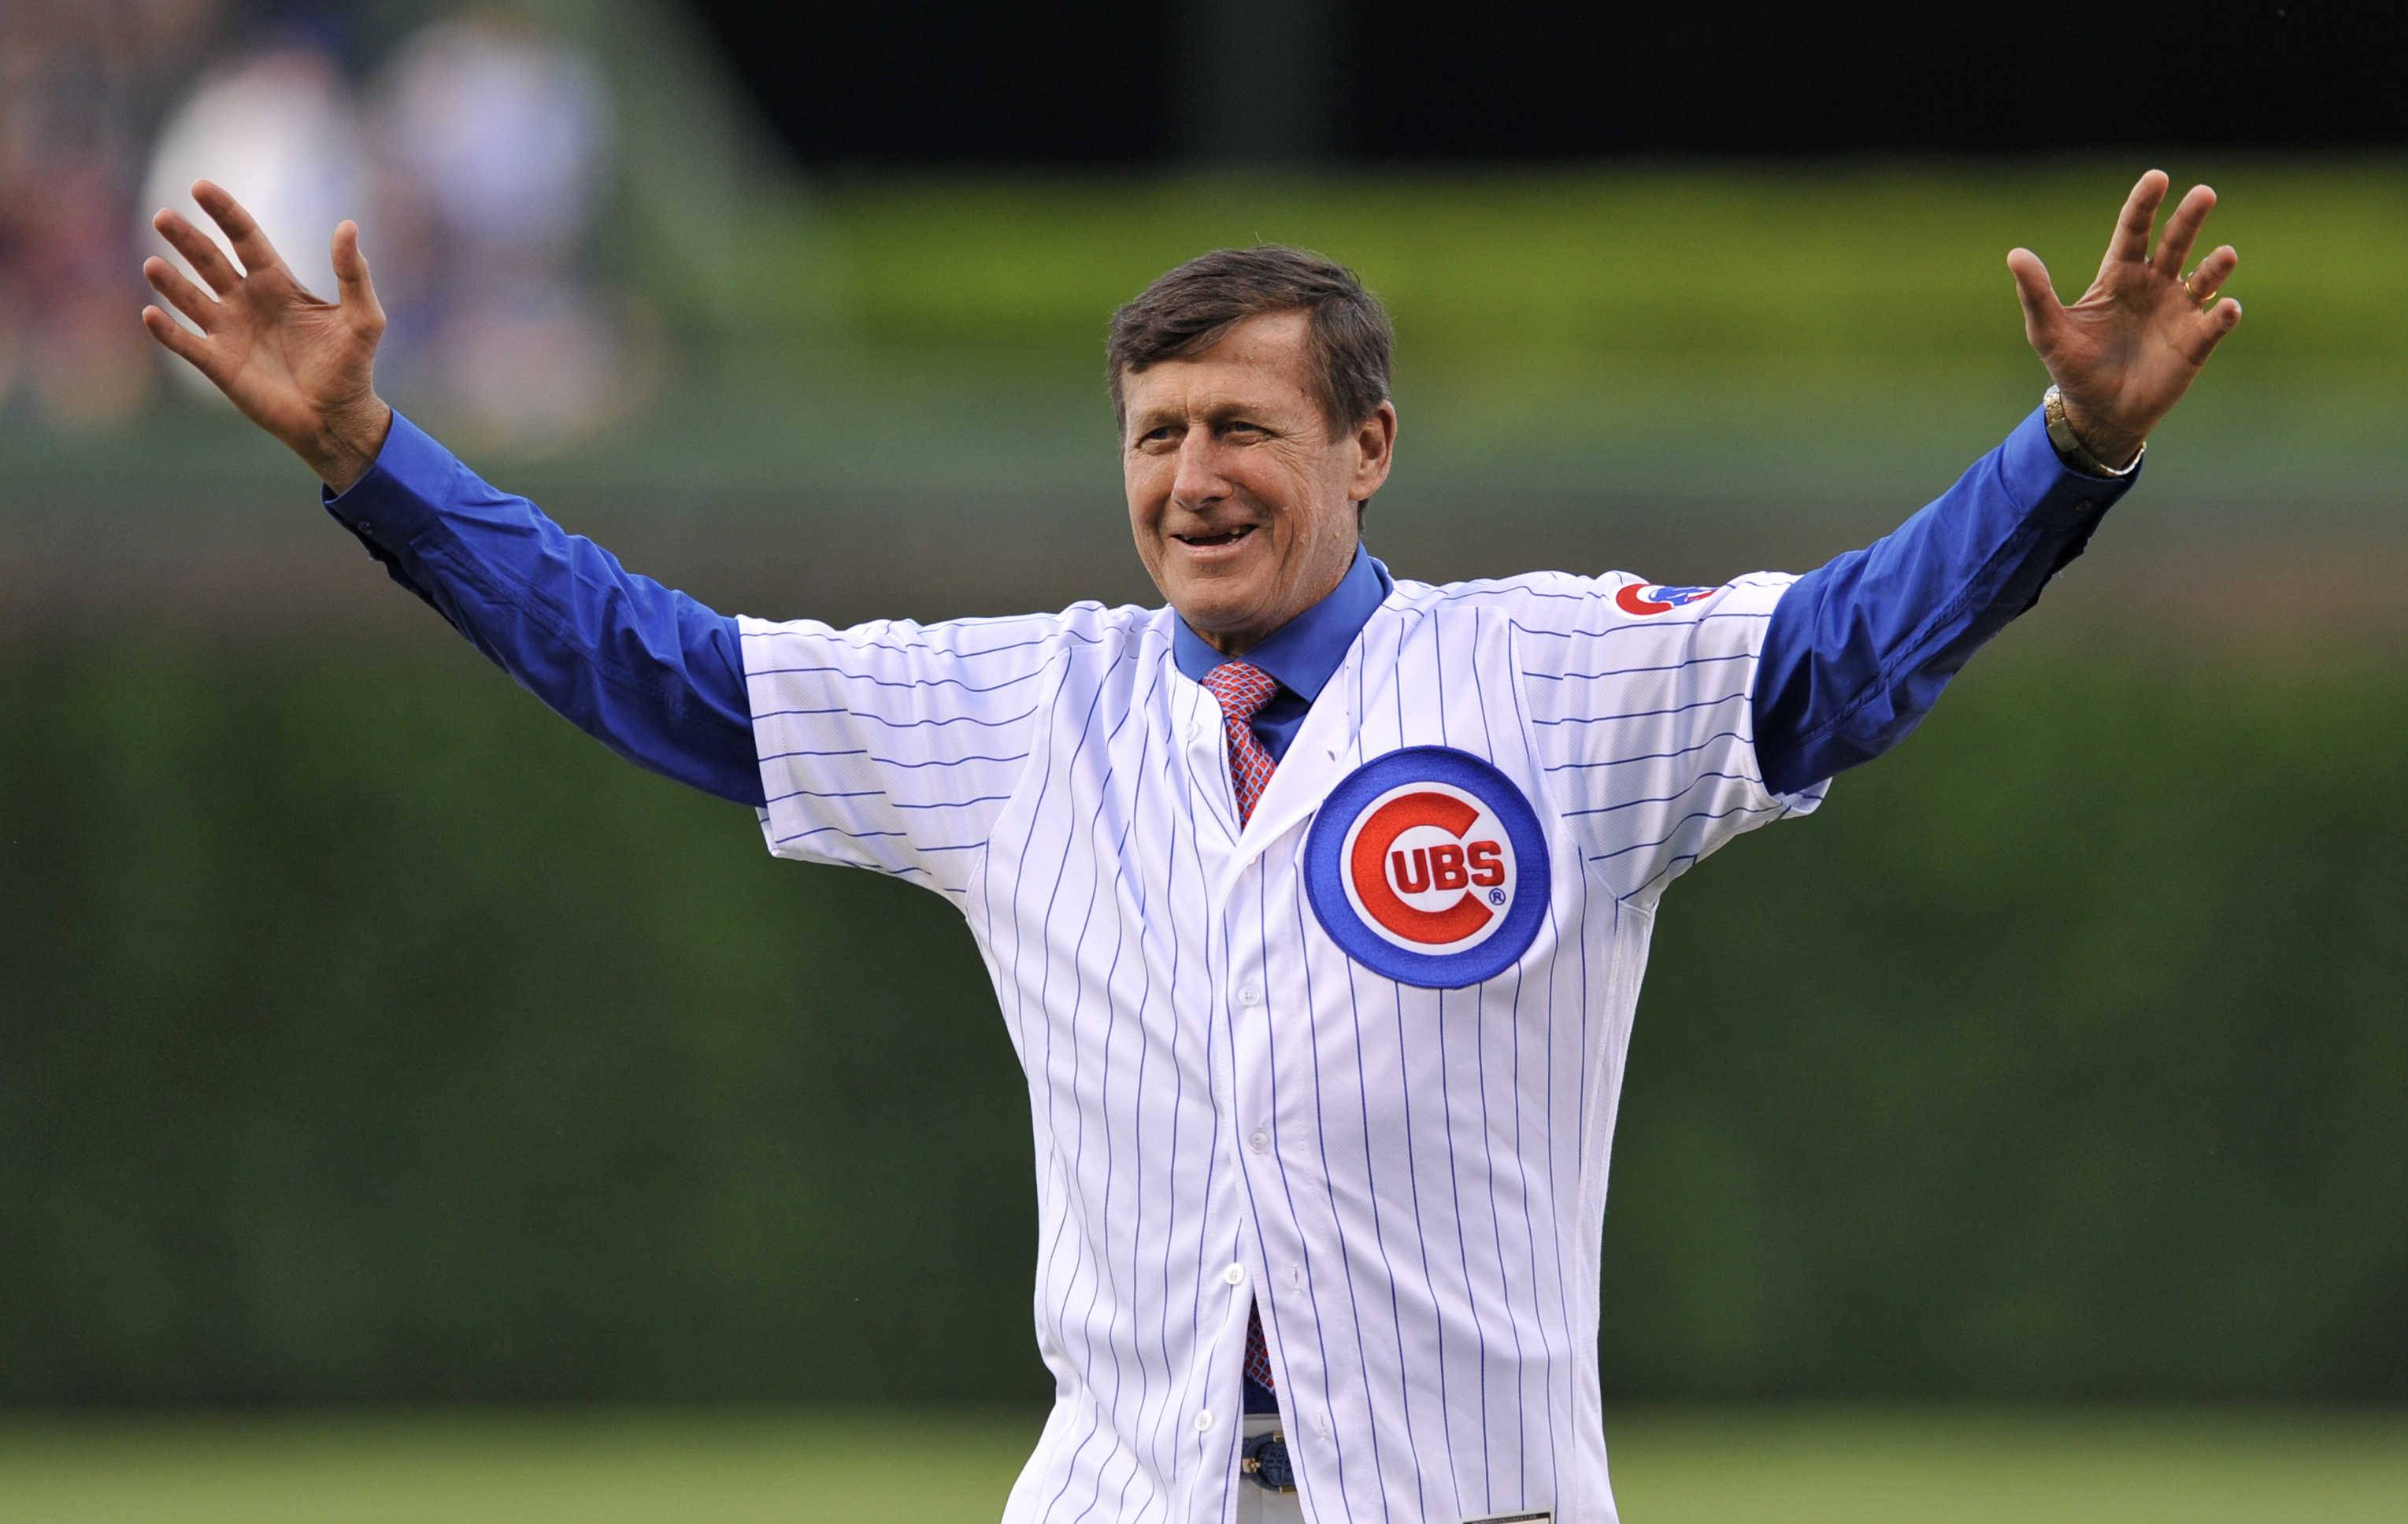 Sager's love of basketball began in Batavia